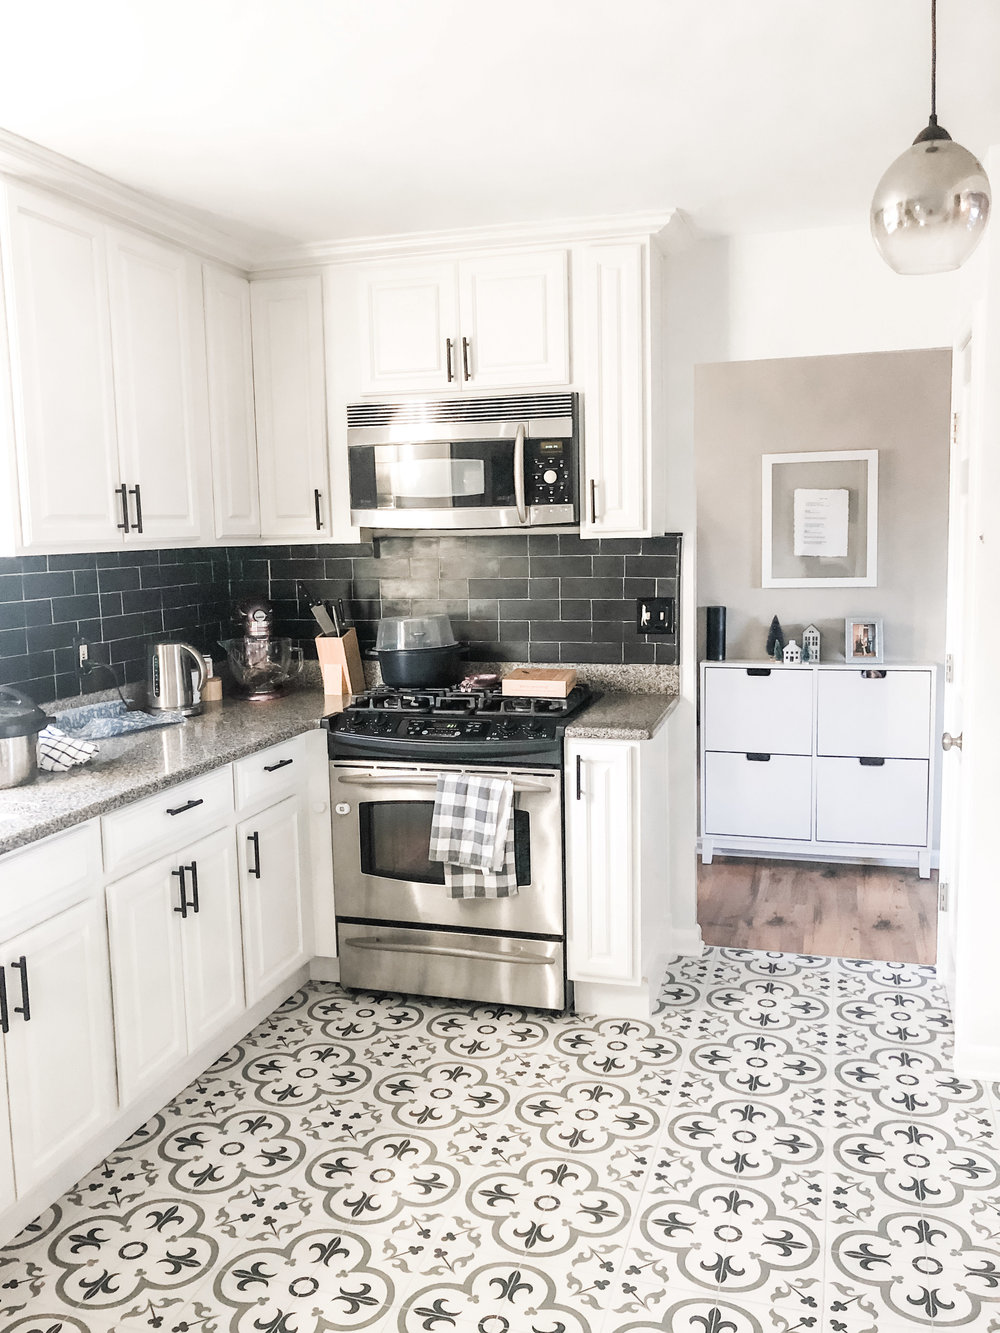 Finished kitchen! So glad I went with the black and white colors earlier this fall when I repainted the cabinets and installed the black backsplash. The patterned tile really pulls everything together.